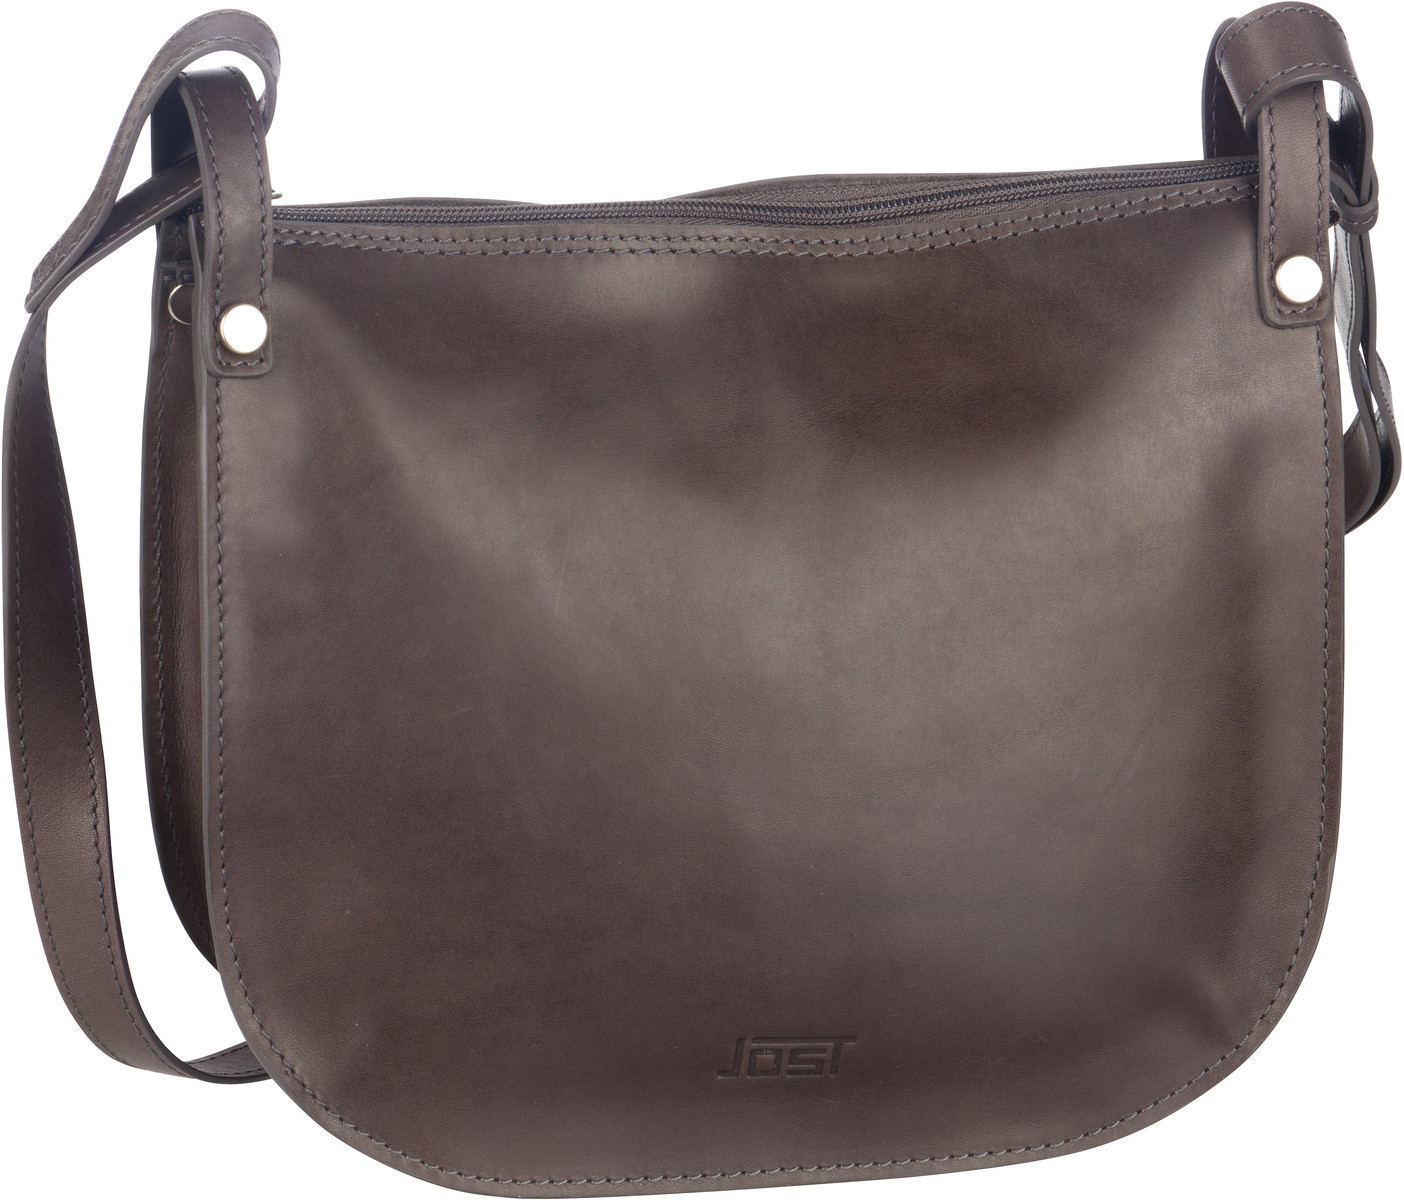 Umhängetasche Rana 1274 Shoulder Bag Grey